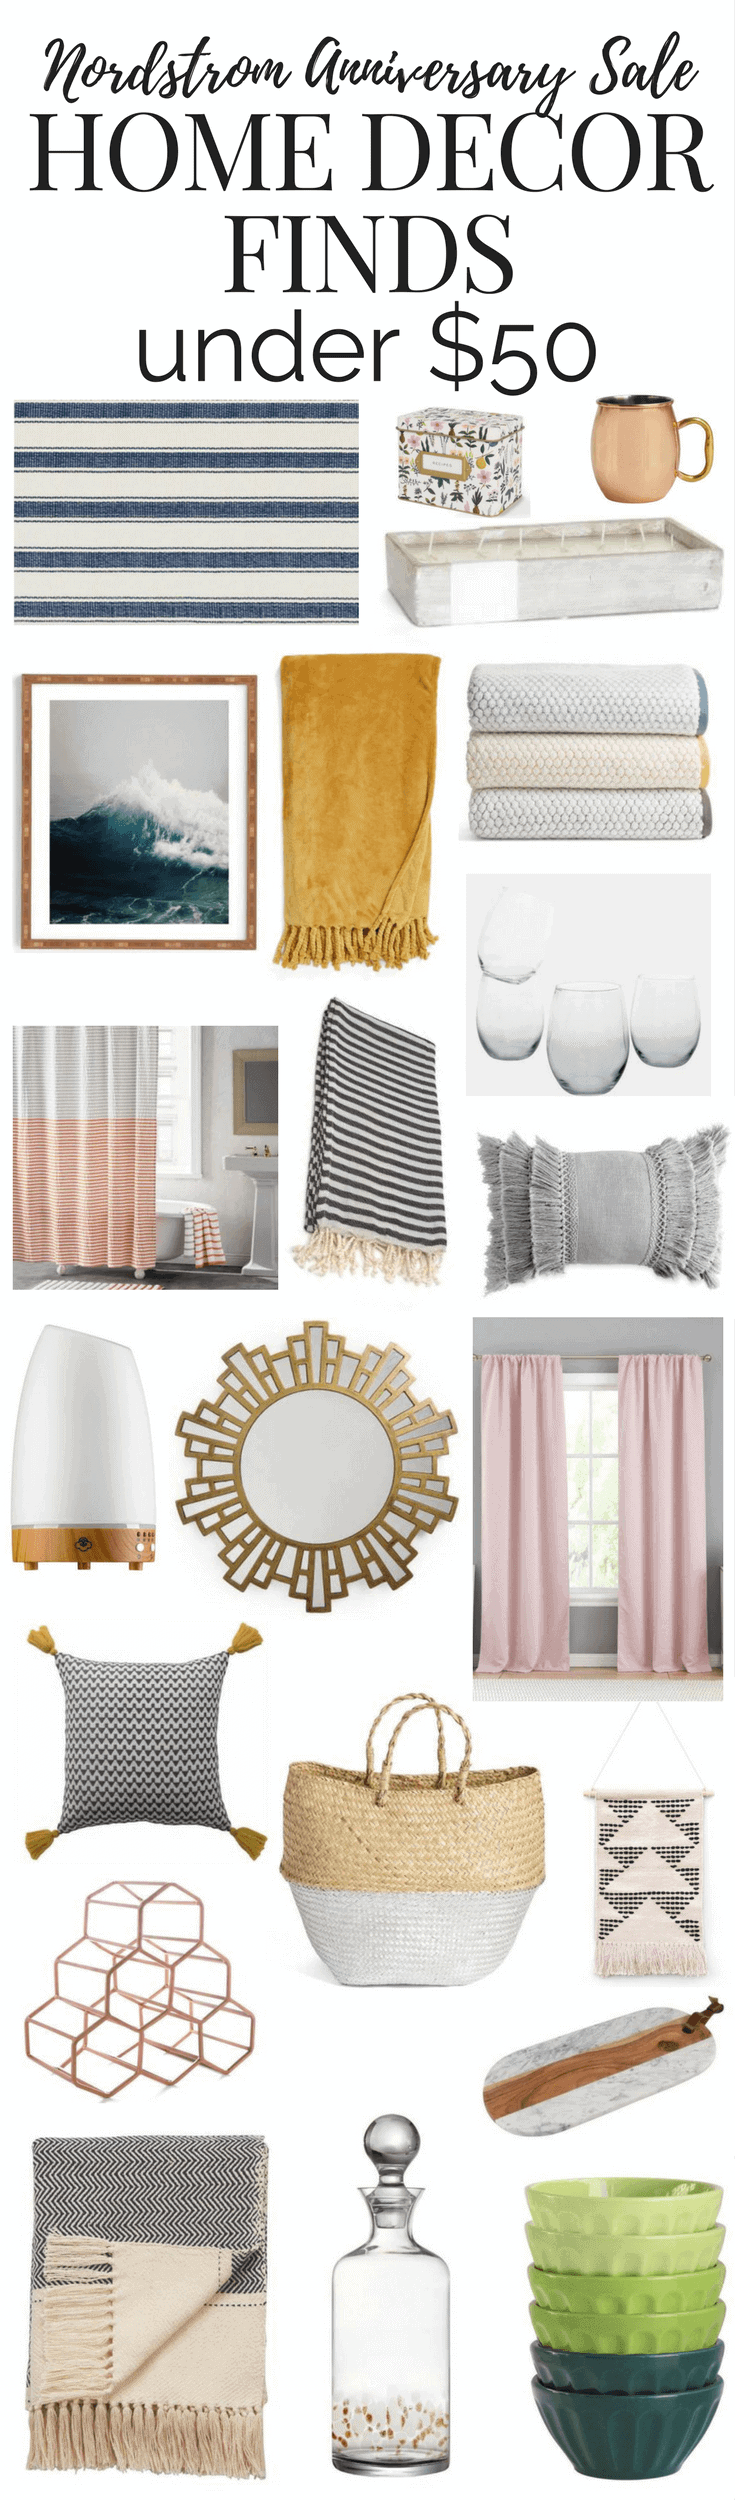 More than 20 gorgeous home decor finds from the Nordstrom Anniversary Sale - all under $50!